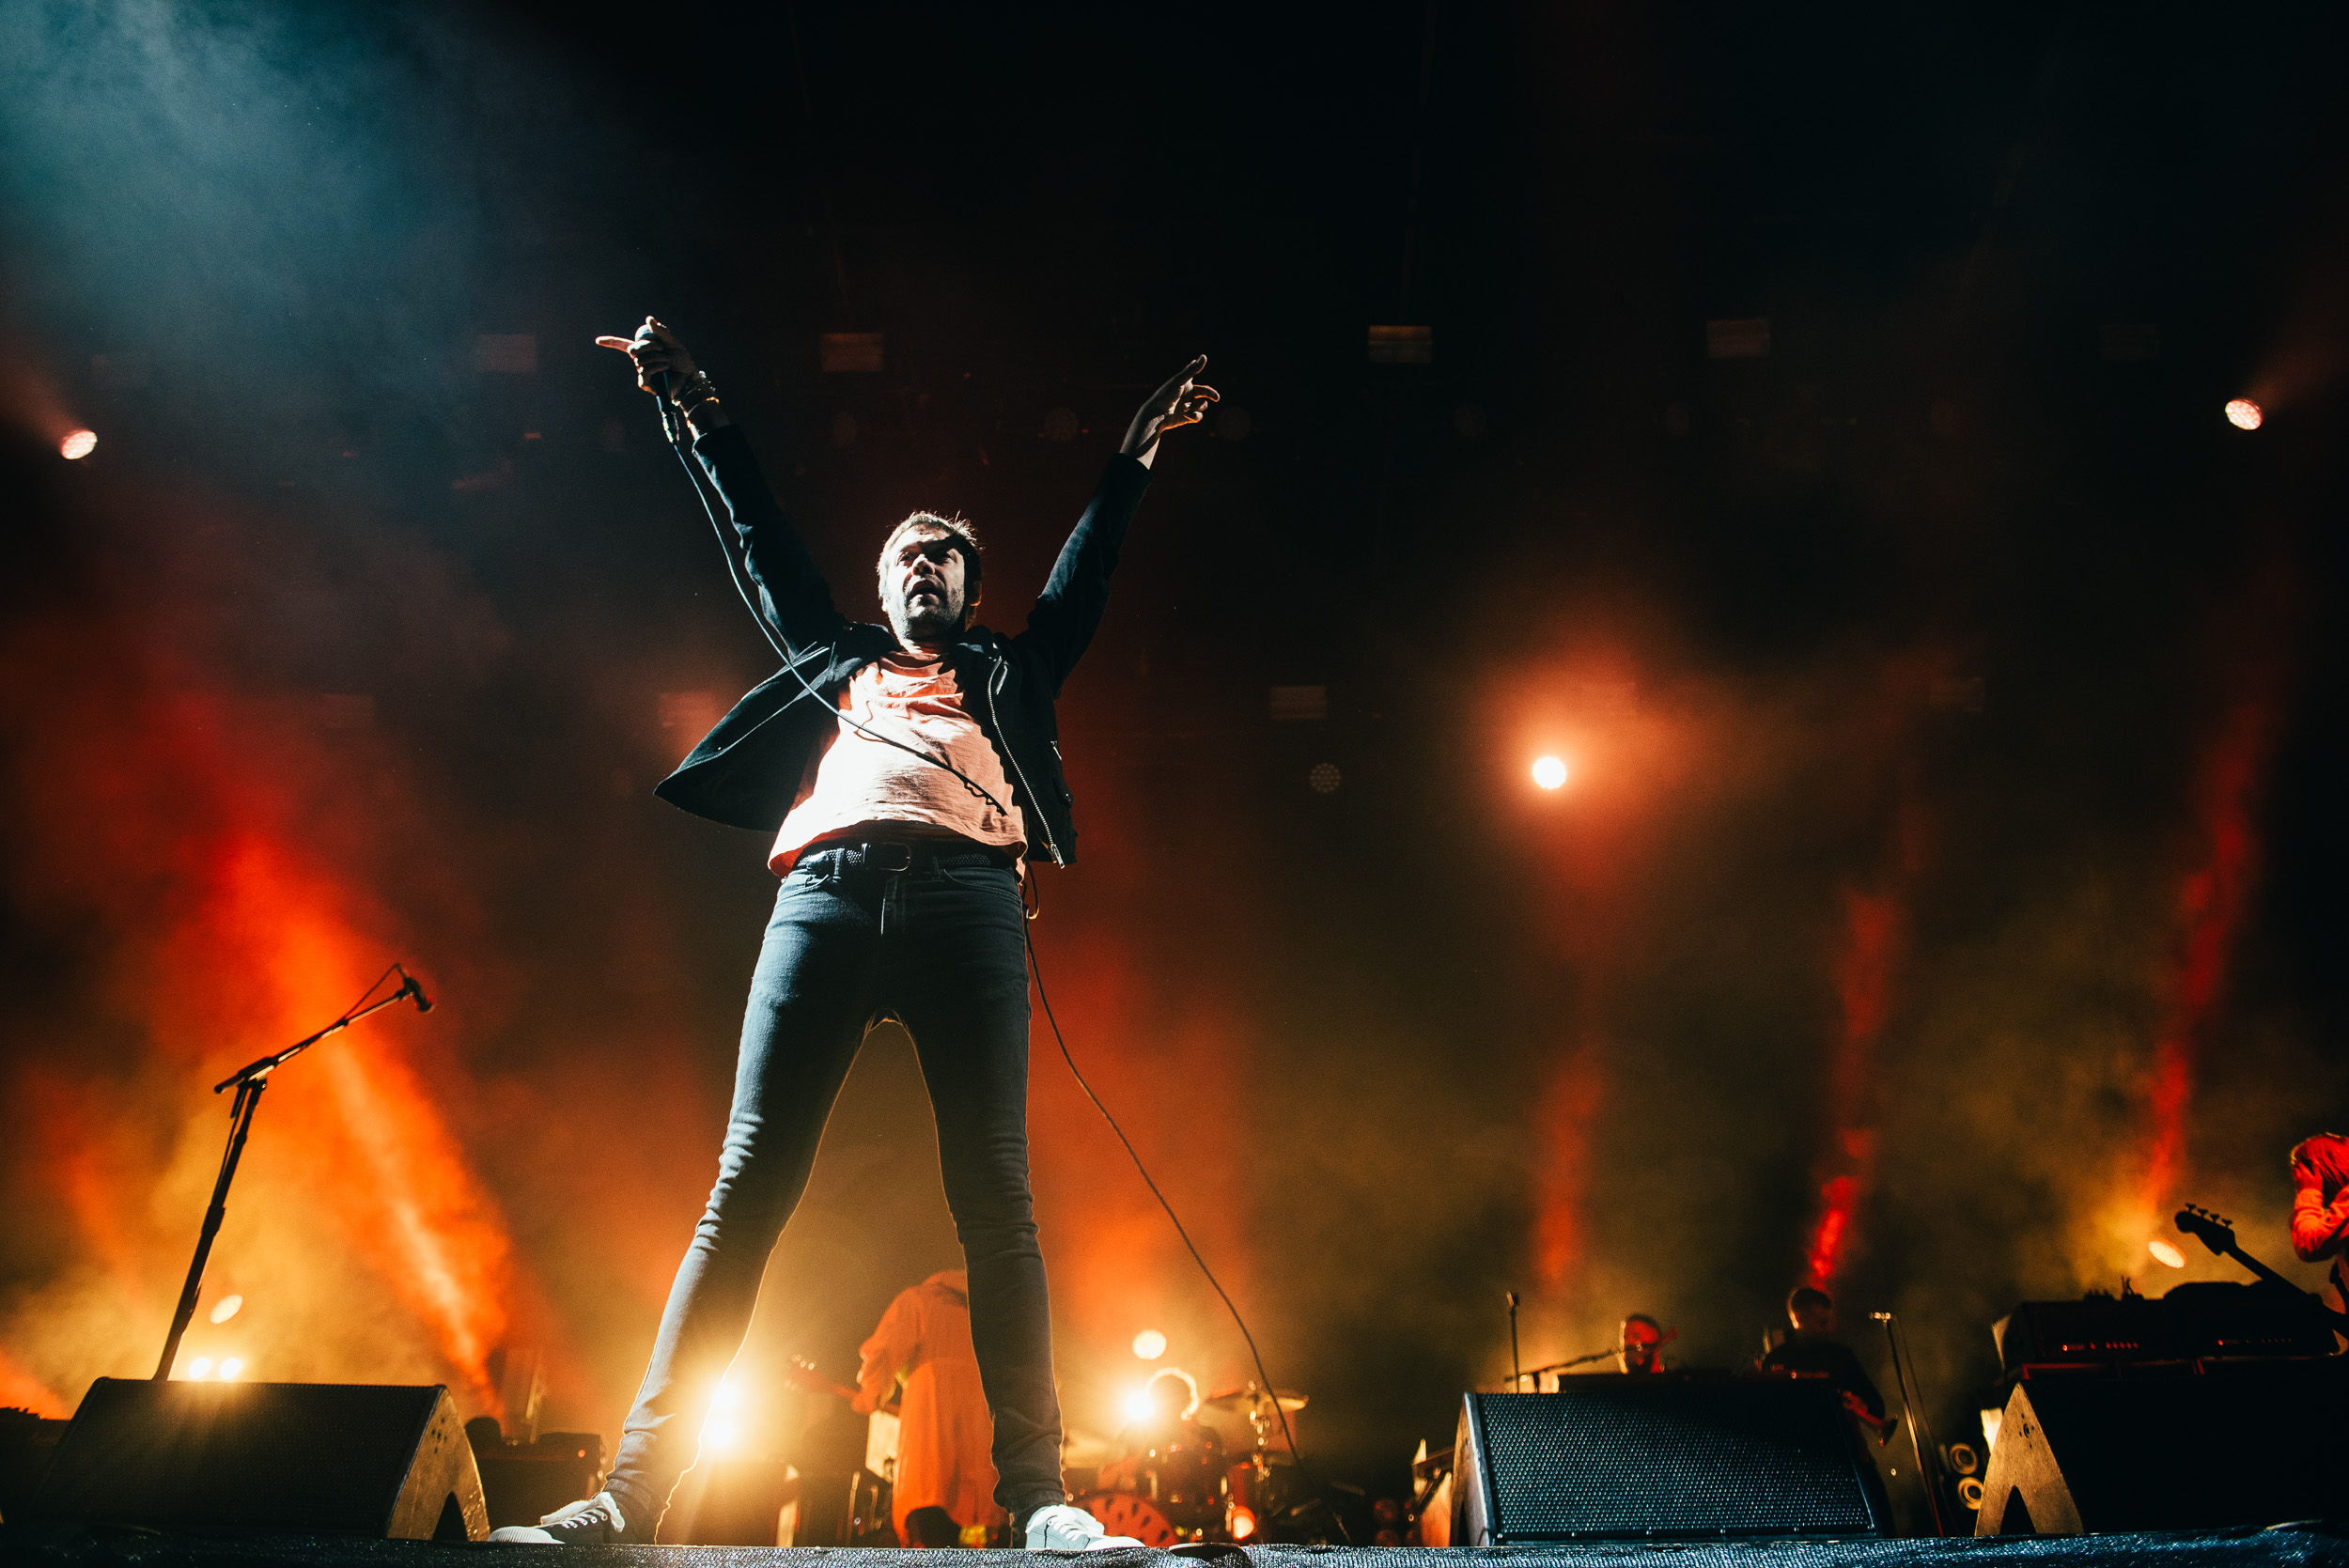 KASABIAN CLOSING FINAL DAY OF EDINBURGH'S SUMMER SESSIONS 2018 AT PRINCES STREET GARDEN'S - 18.08.2018  PICTURE BY: RYAN JOHNSTON